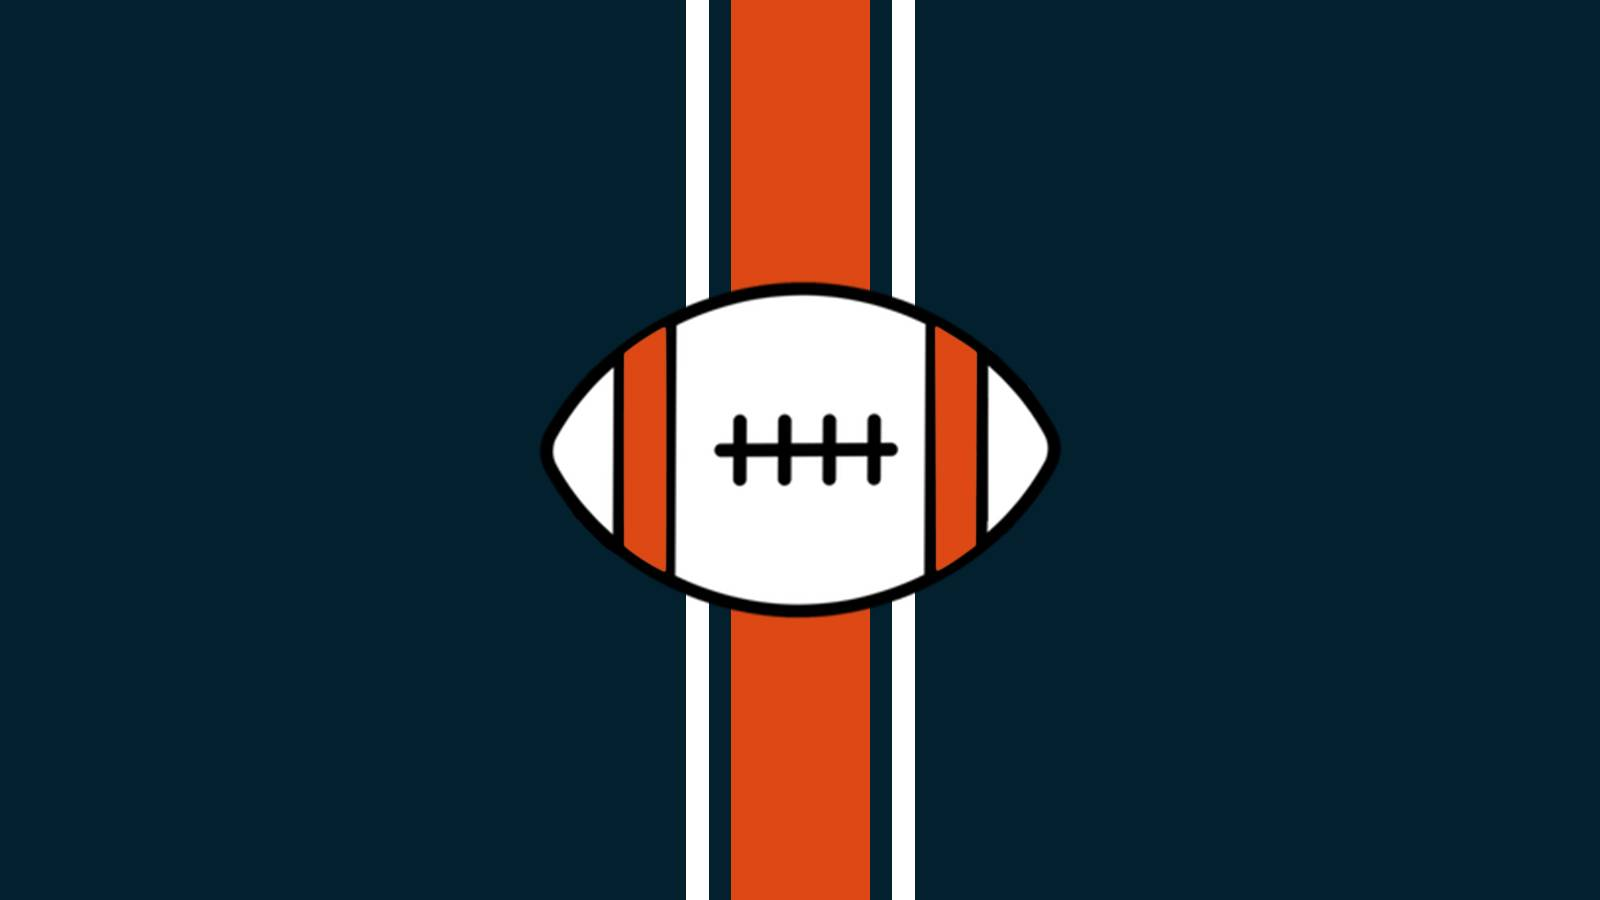 NFL Preseason - Cleveland Browns at Chicago Bears